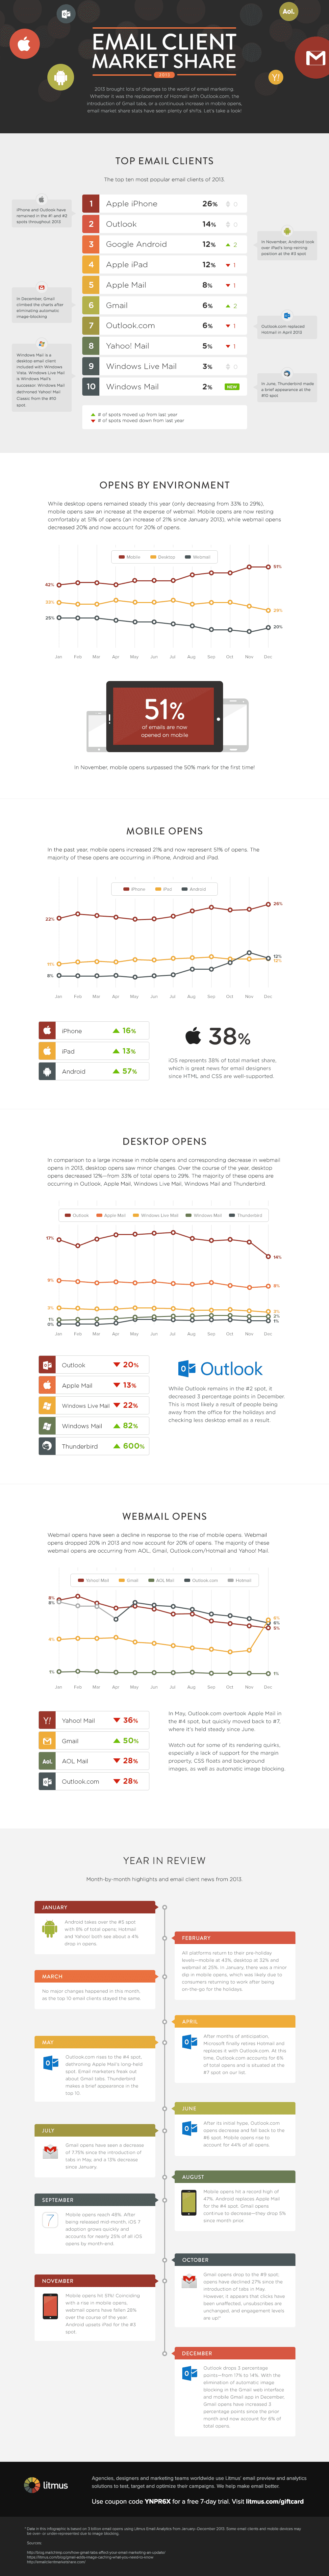 most-popular-email-clients-2014